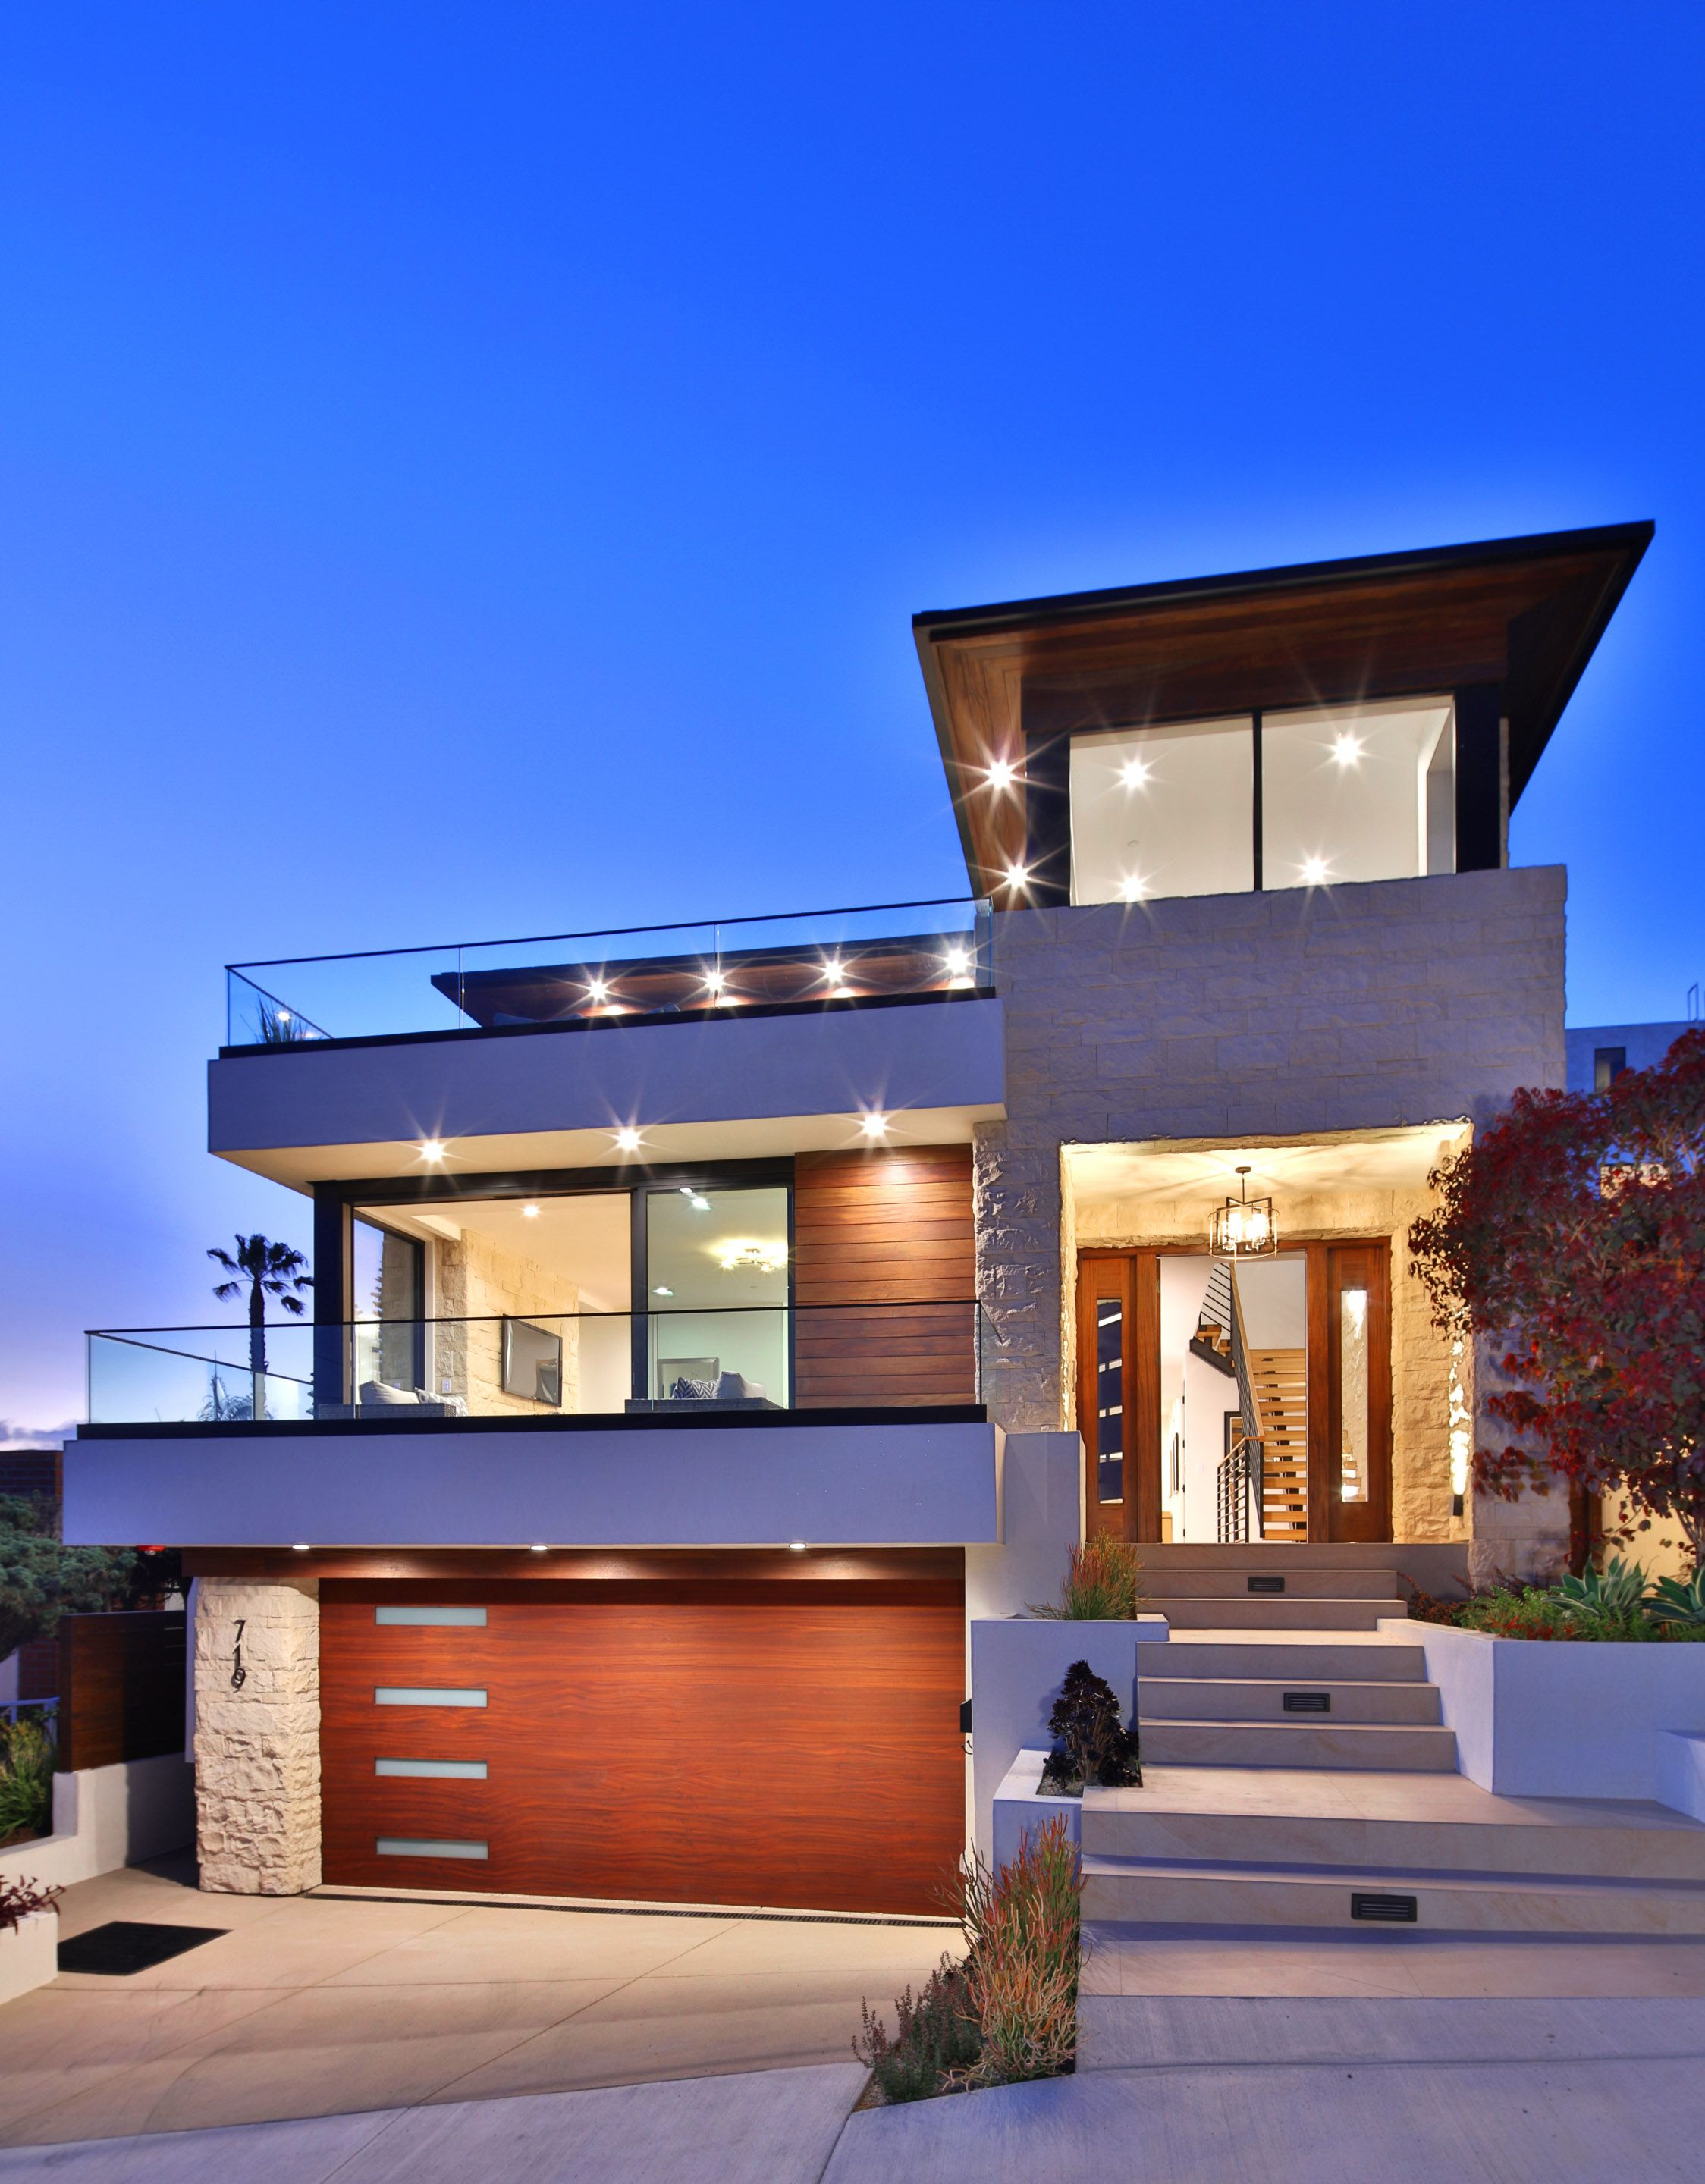 Luxury Modern Home Exterior In Southern California In 2020 Luxury Modern Homes House Front Design Duplex House Design